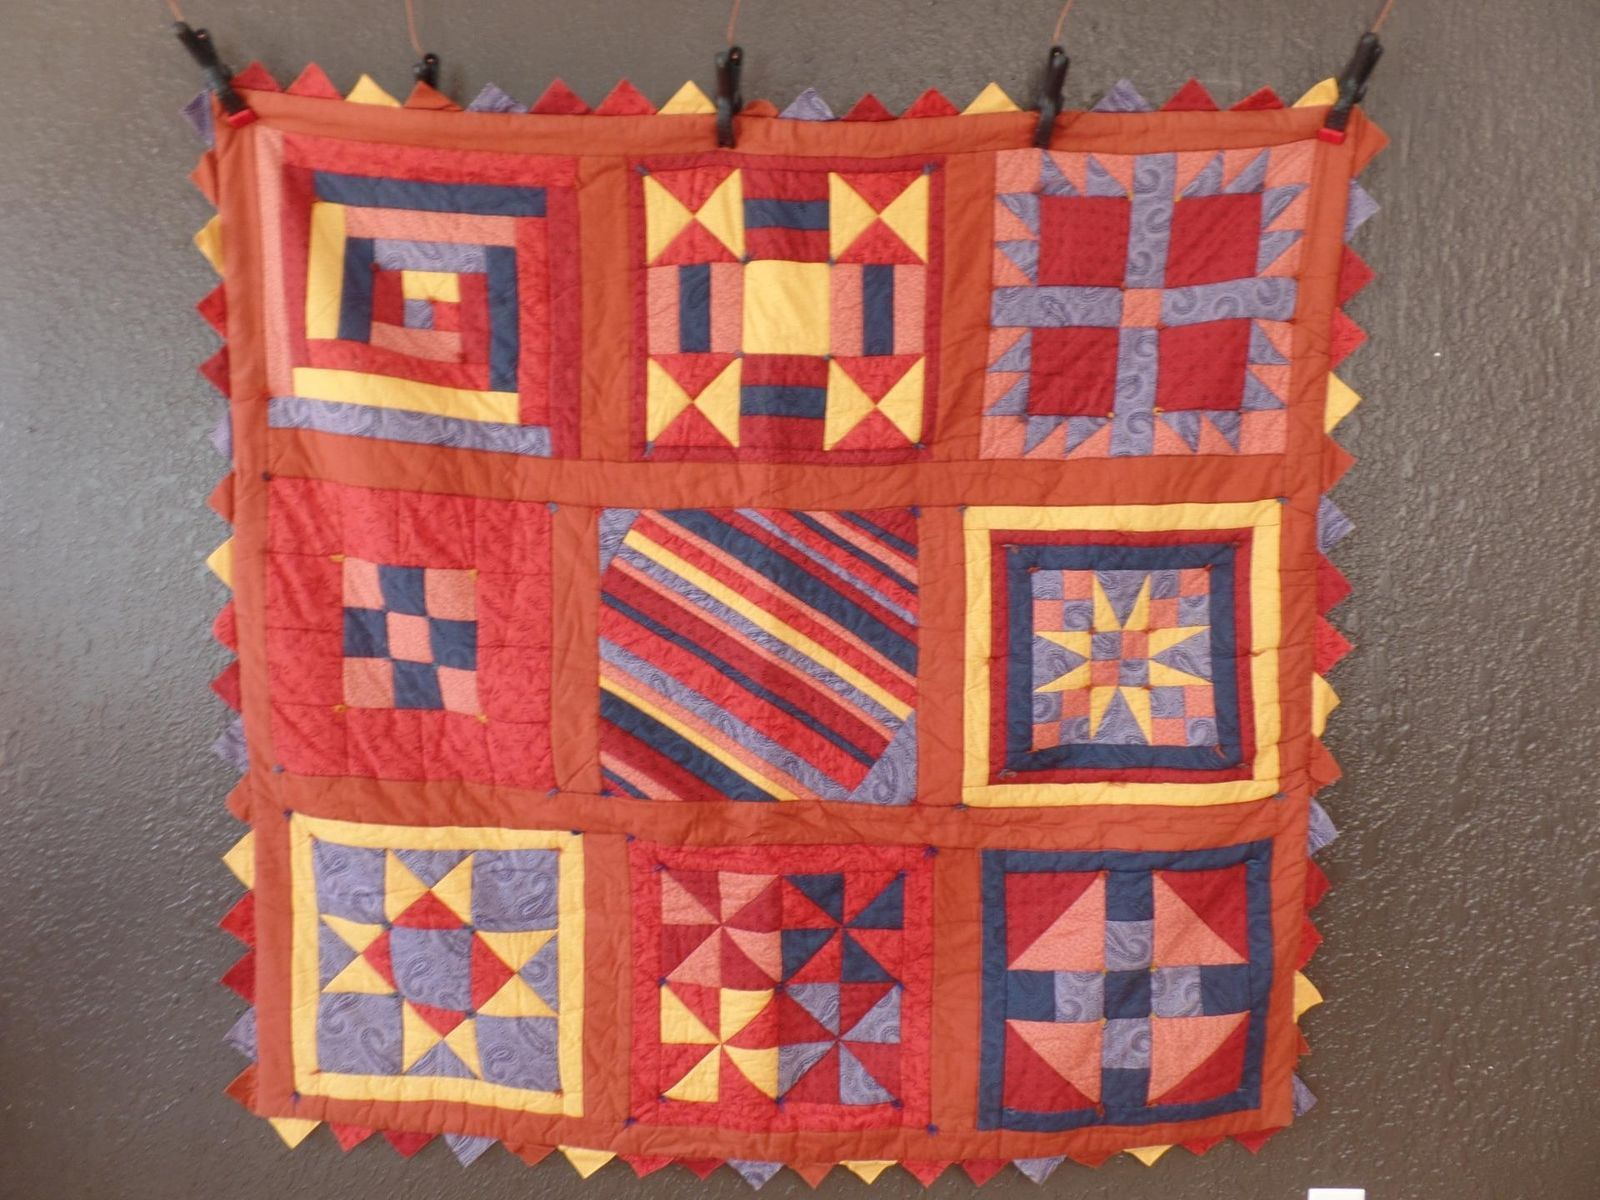 Homemade Quilt Star Tex Tapestry 56x53 Squares Striped Blanket Table Topper